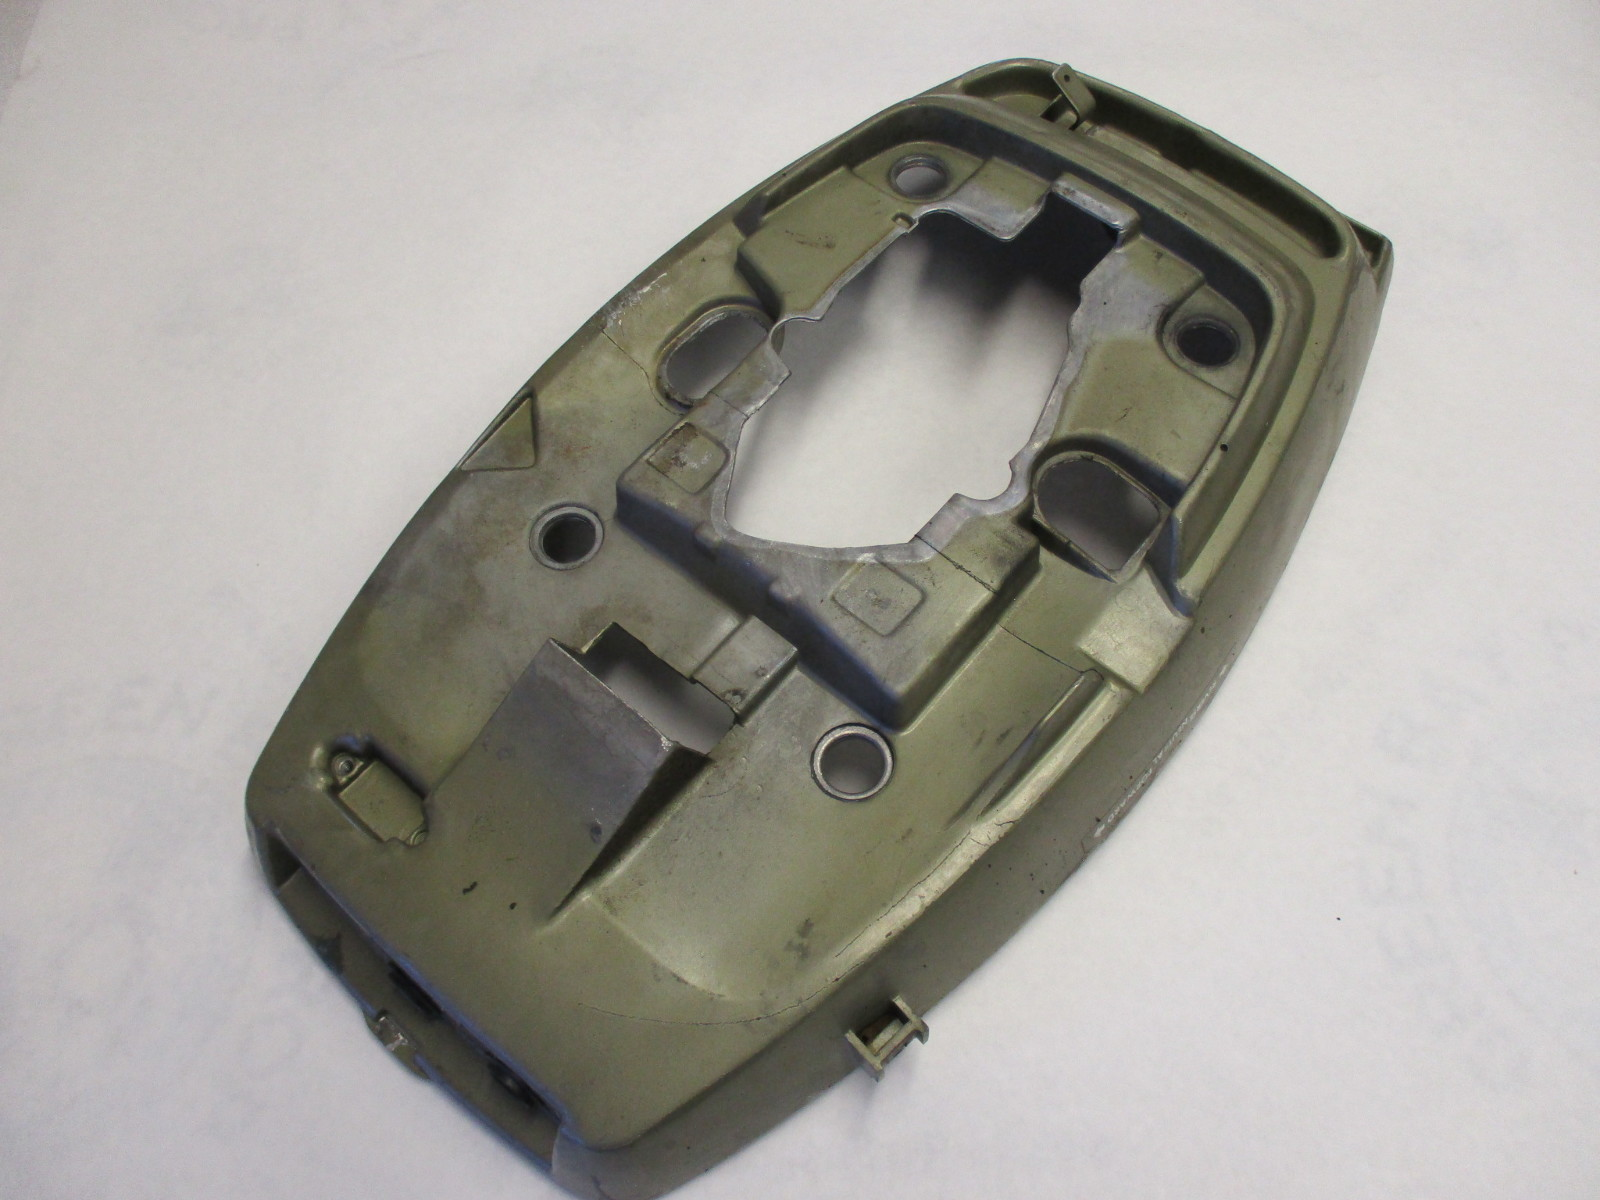 0317308 Lower Motor Cover Cowl Evinrude Johnson 18 20 25 Hp Outboard 0321460